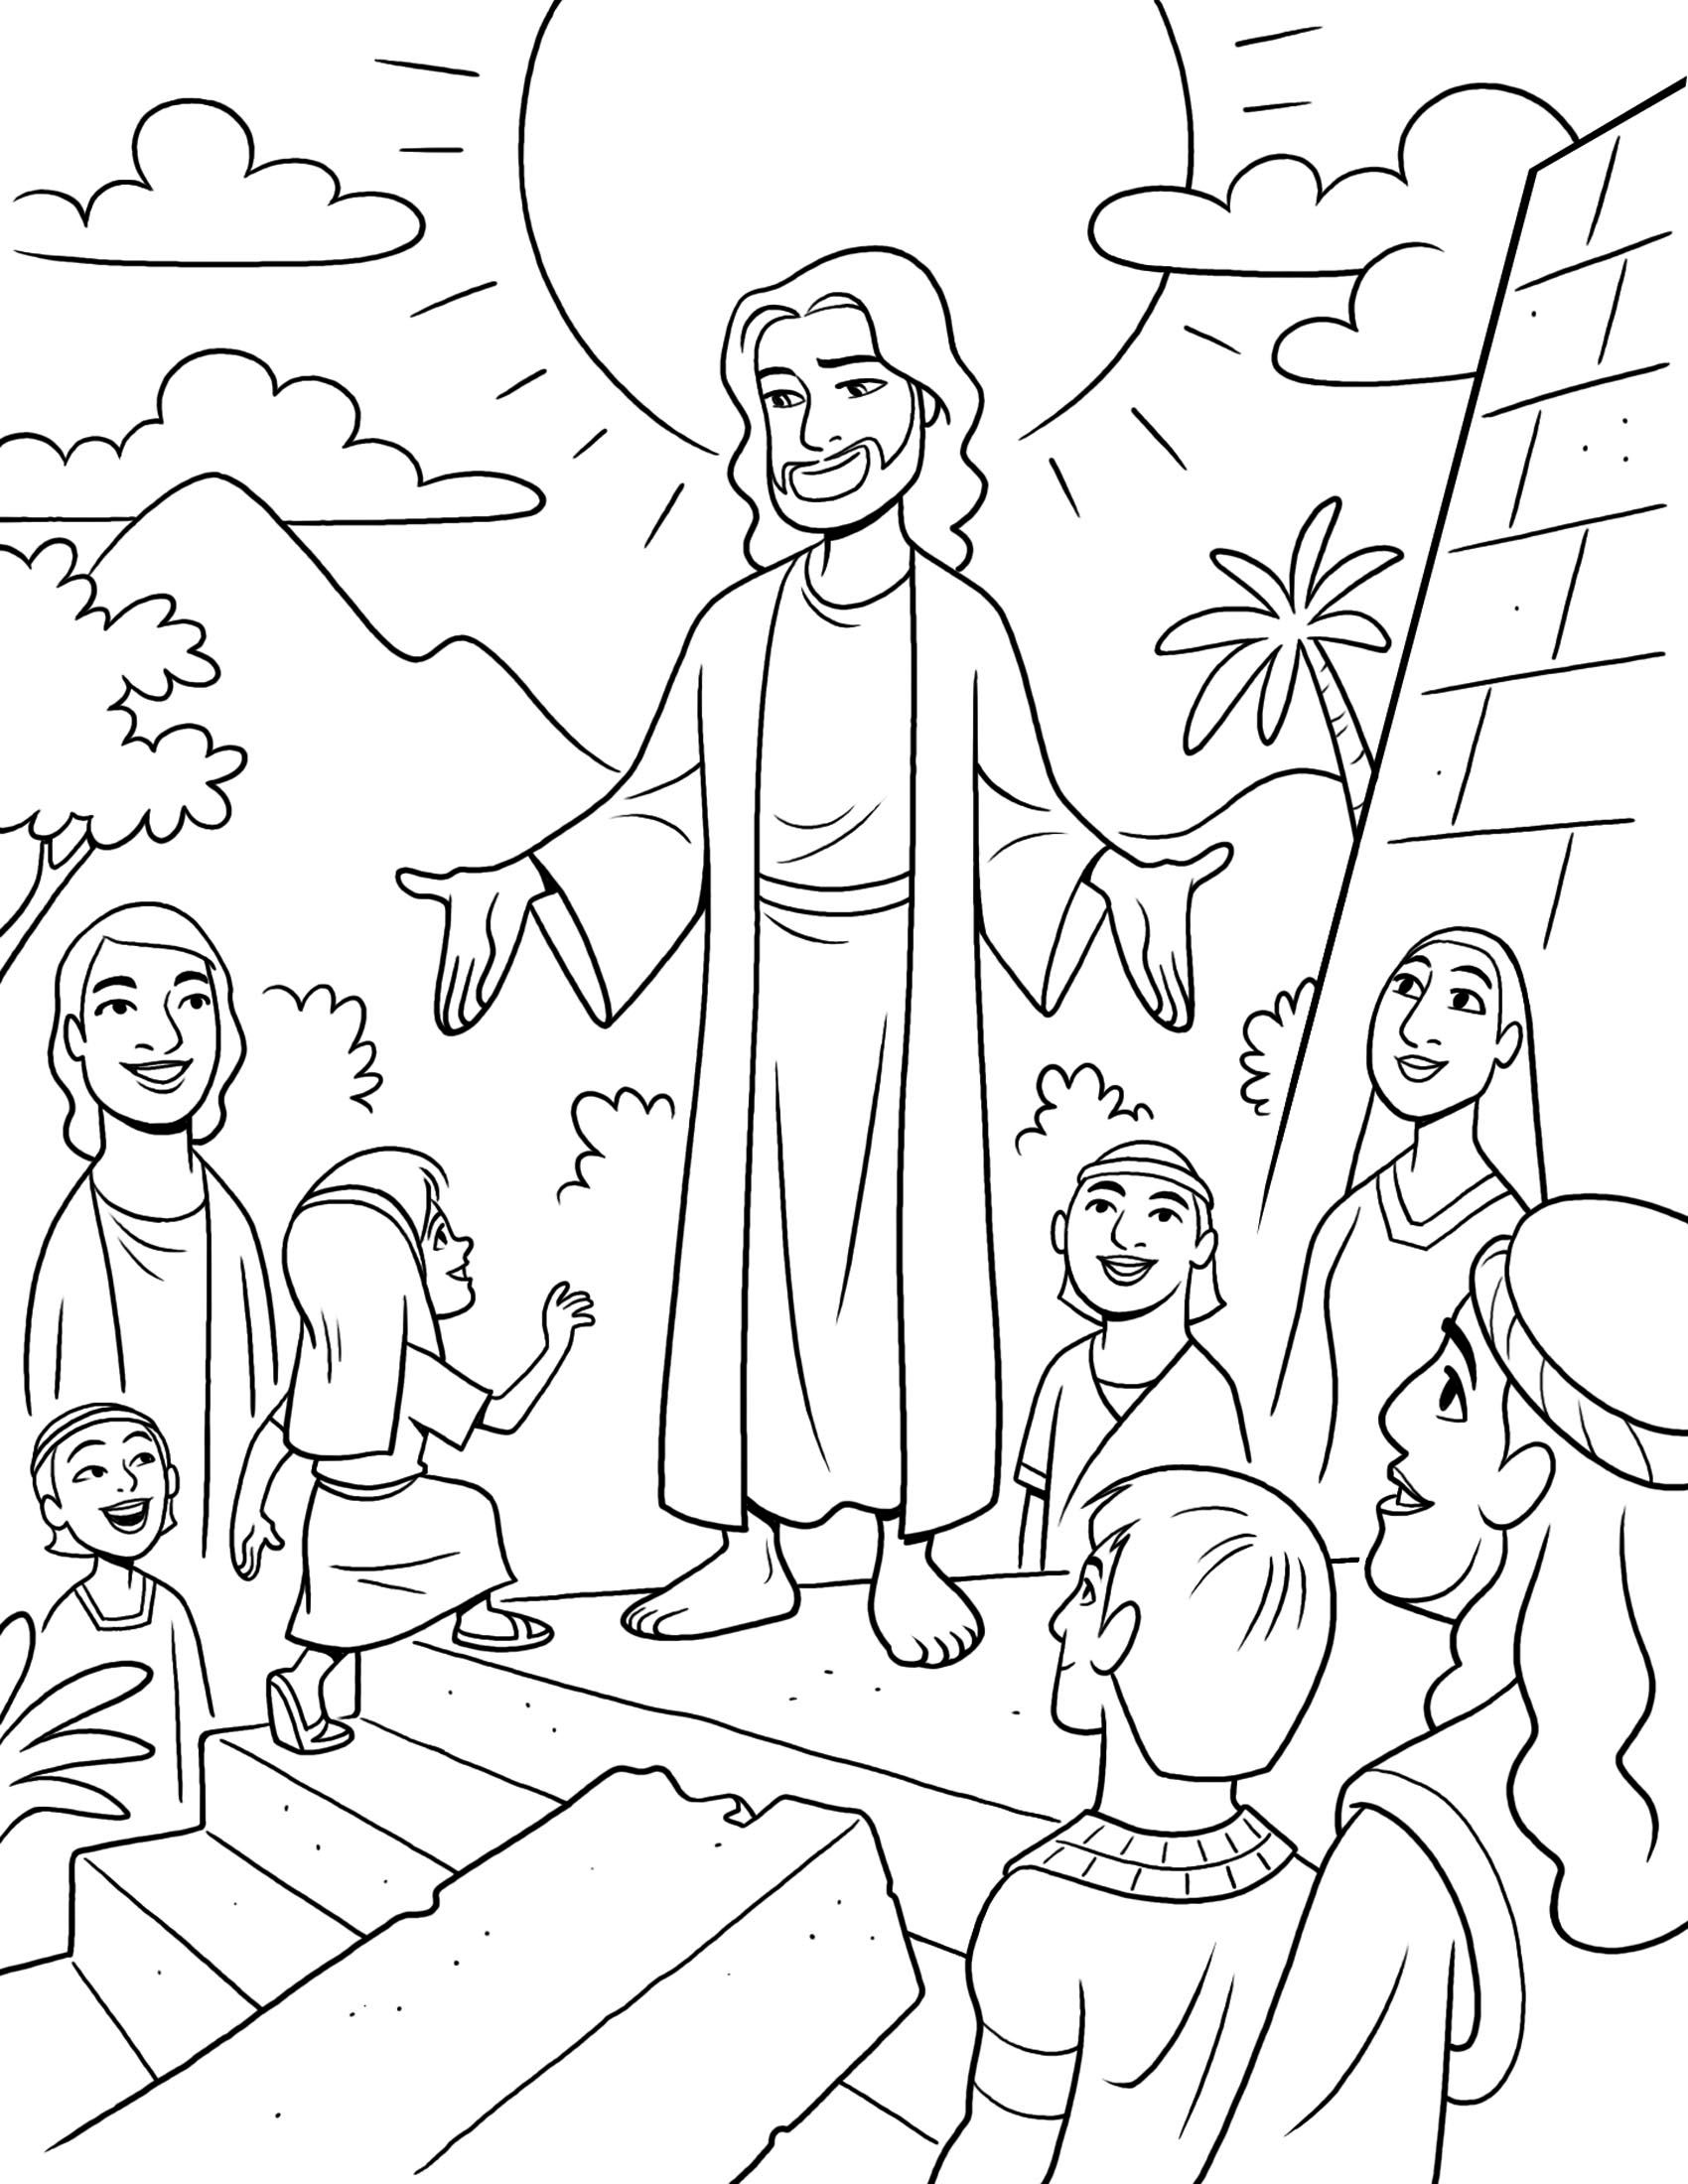 Book of Mormon stories. This is a fun coloring page of Jesus ...